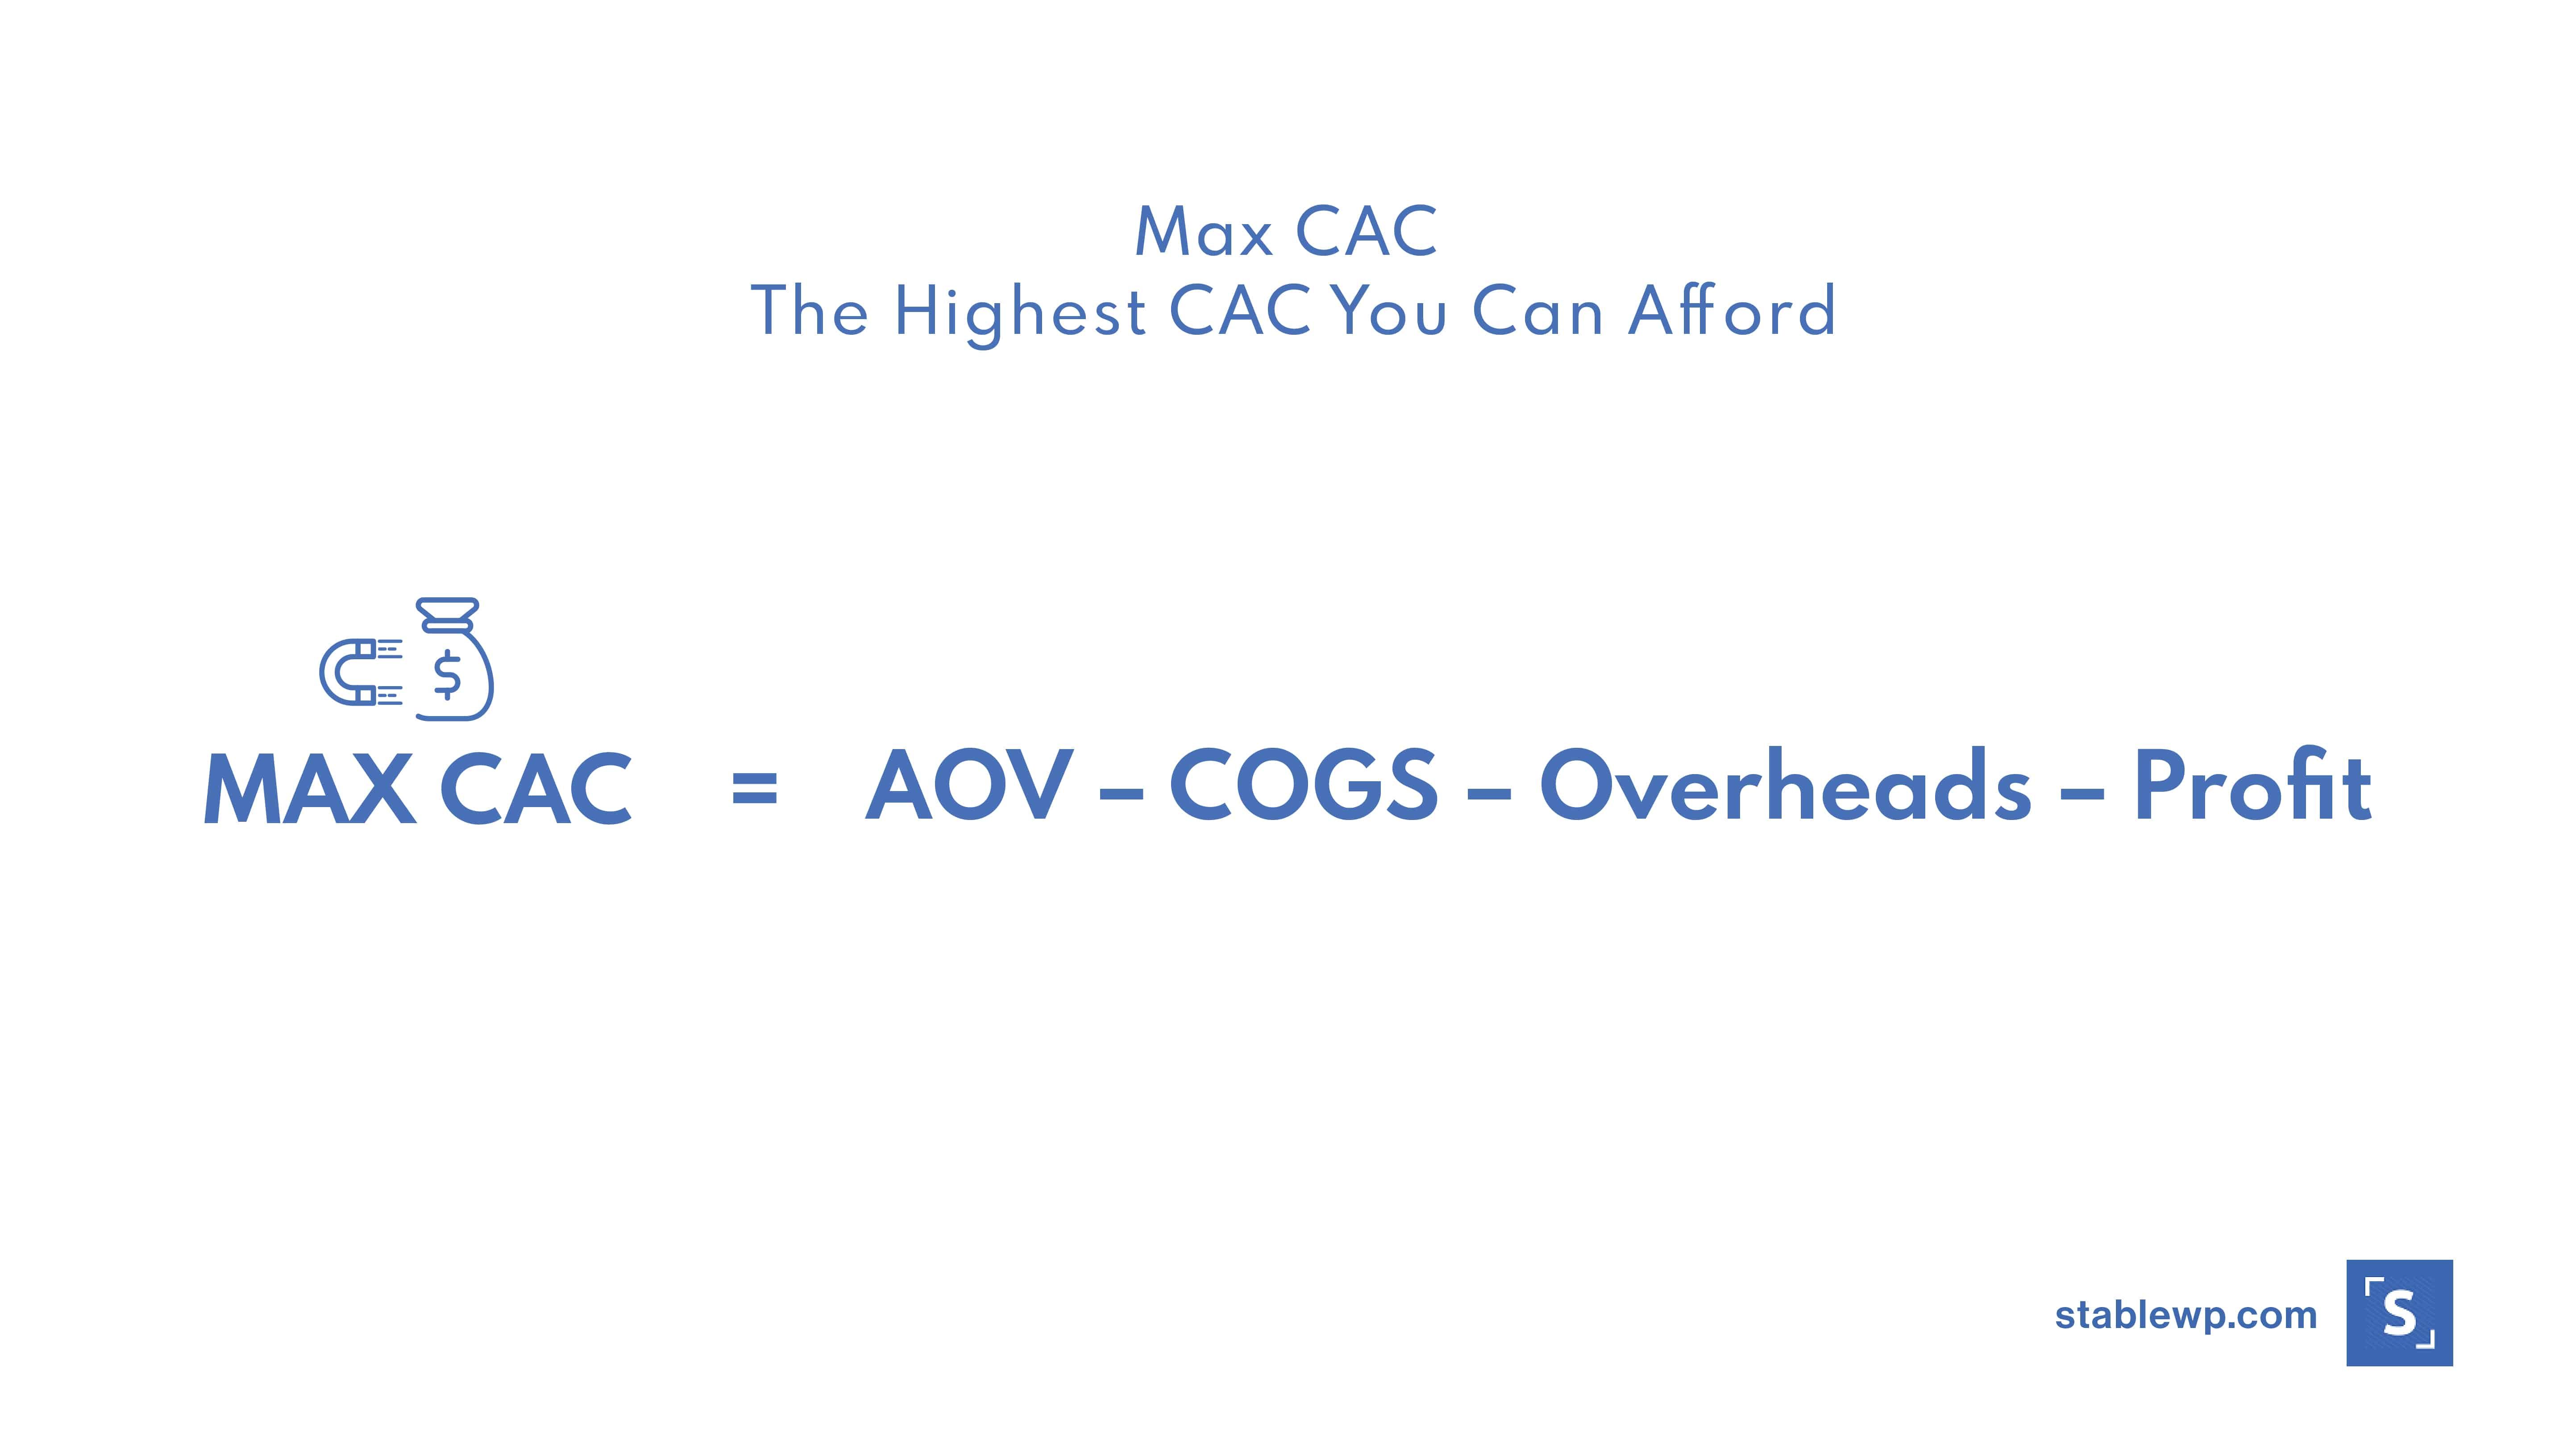 the highest cac you can afford